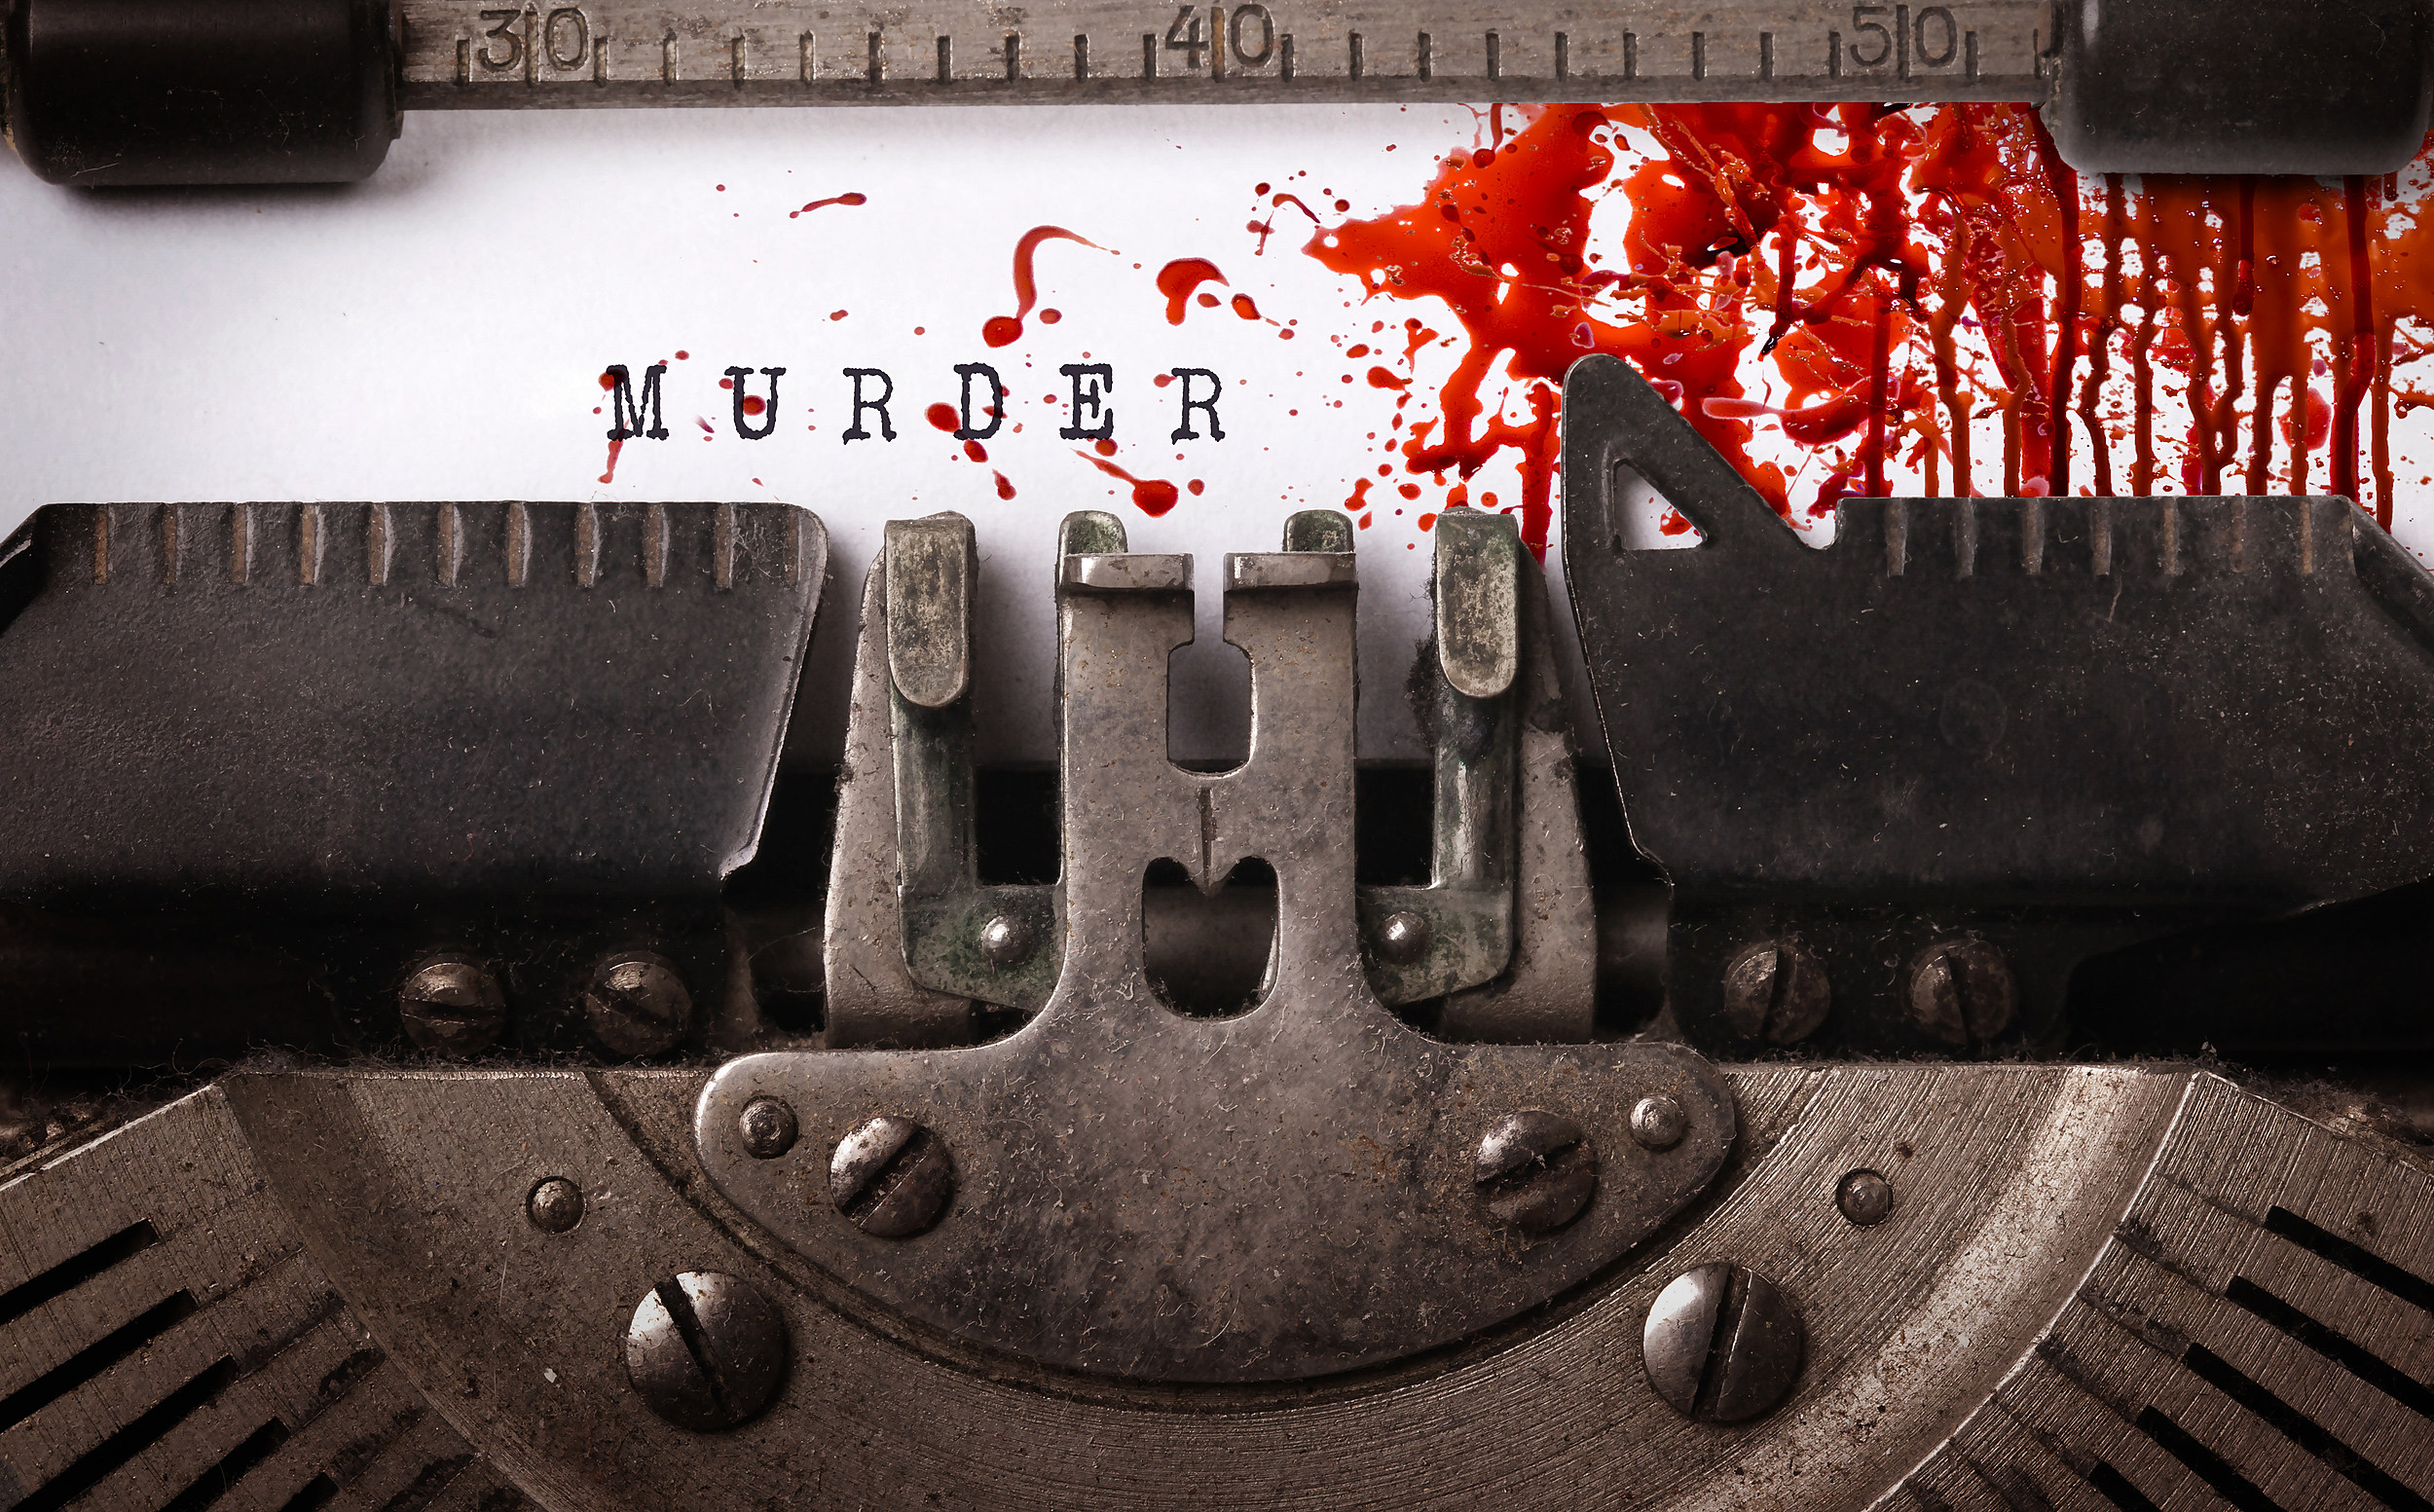 Bloody note - Vintage inscription made by old typewriter